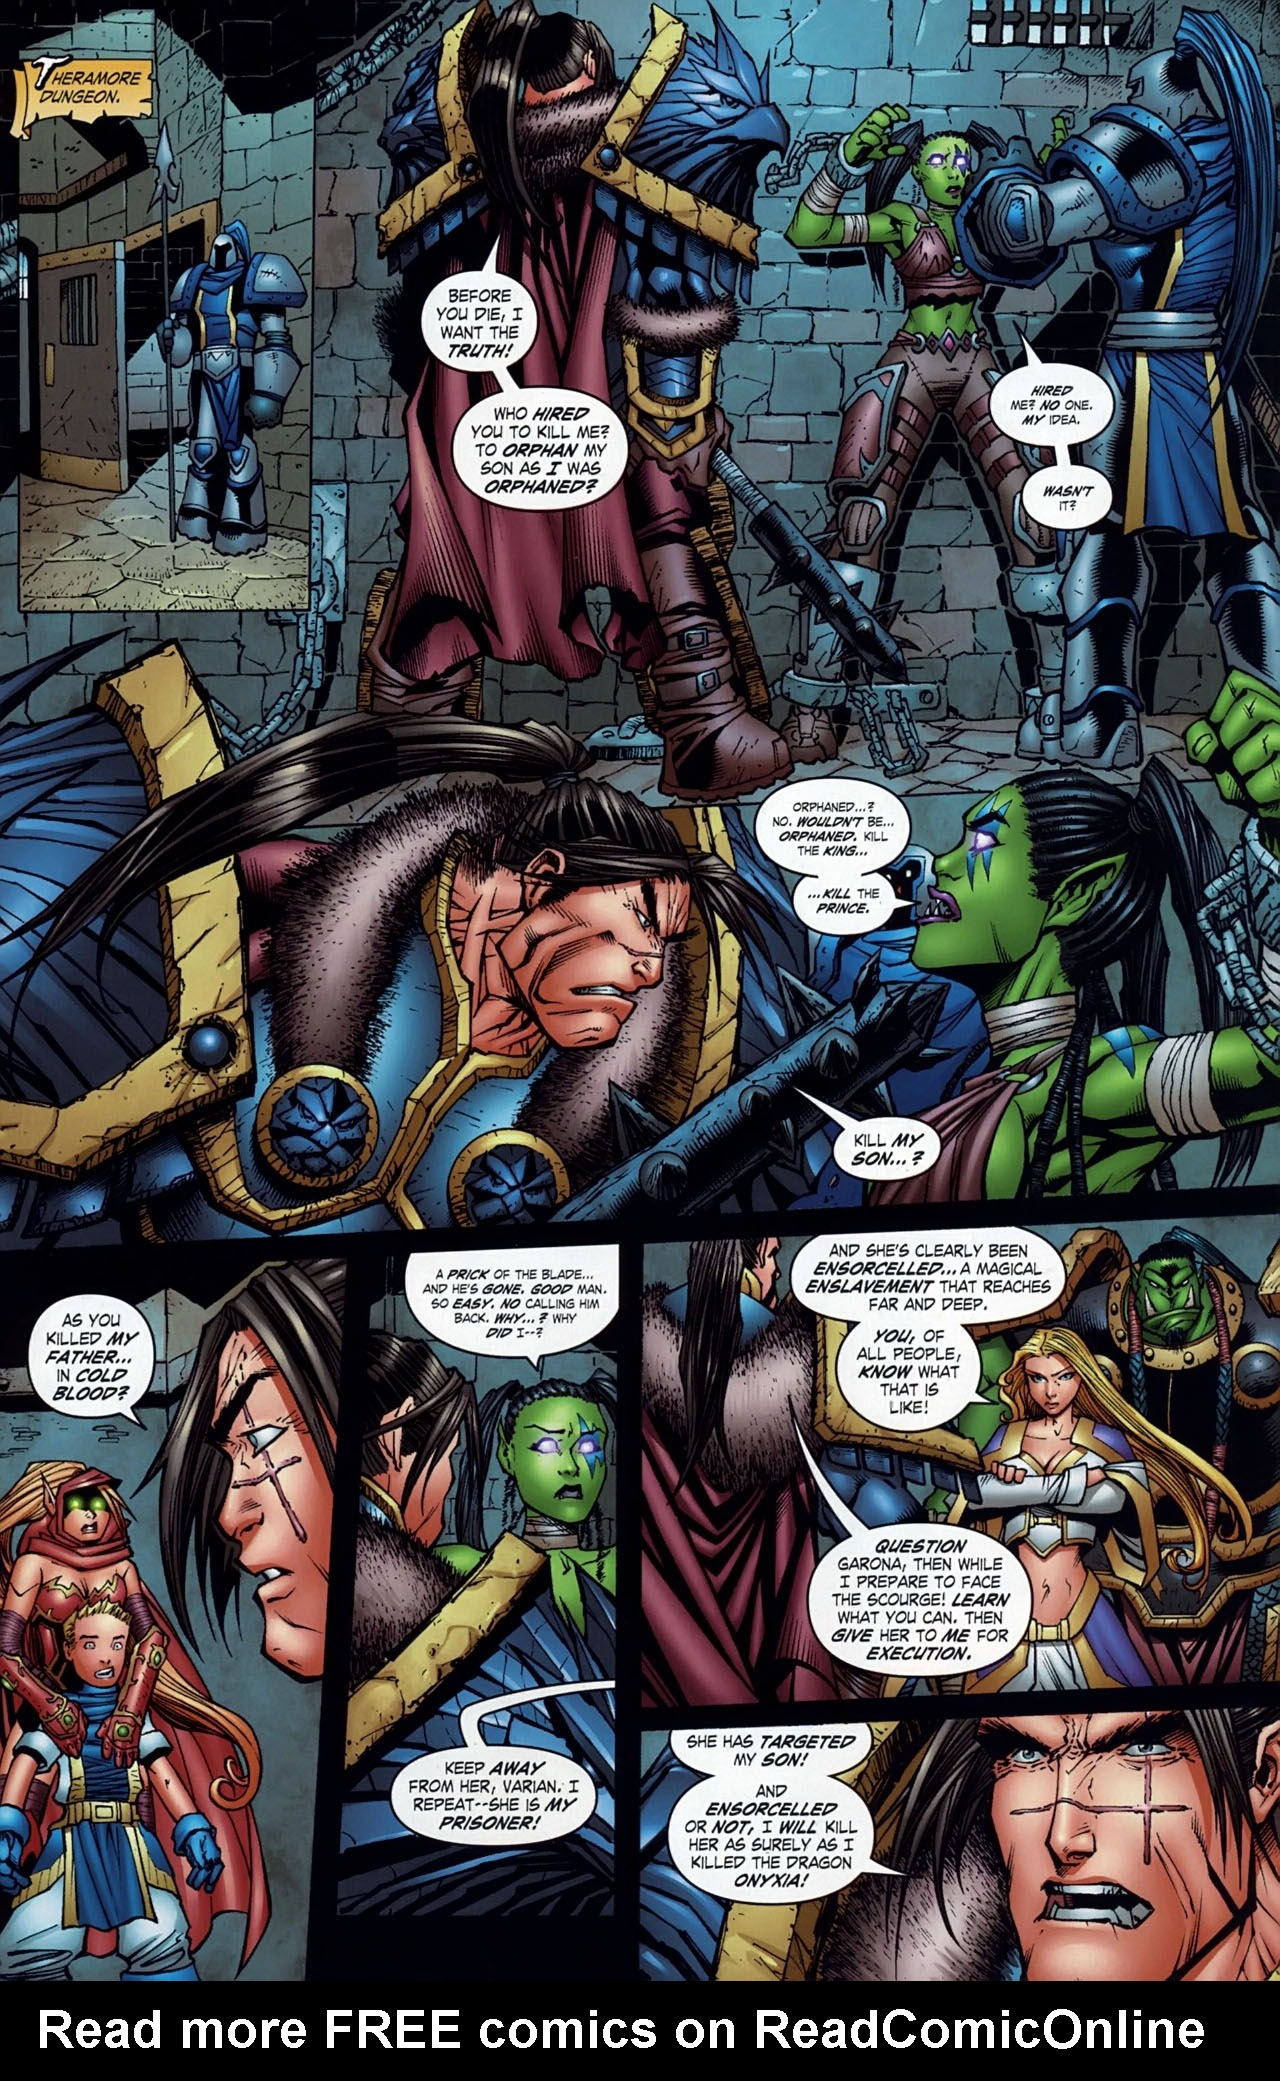 Read online World of Warcraft comic -  Issue #18 - 16